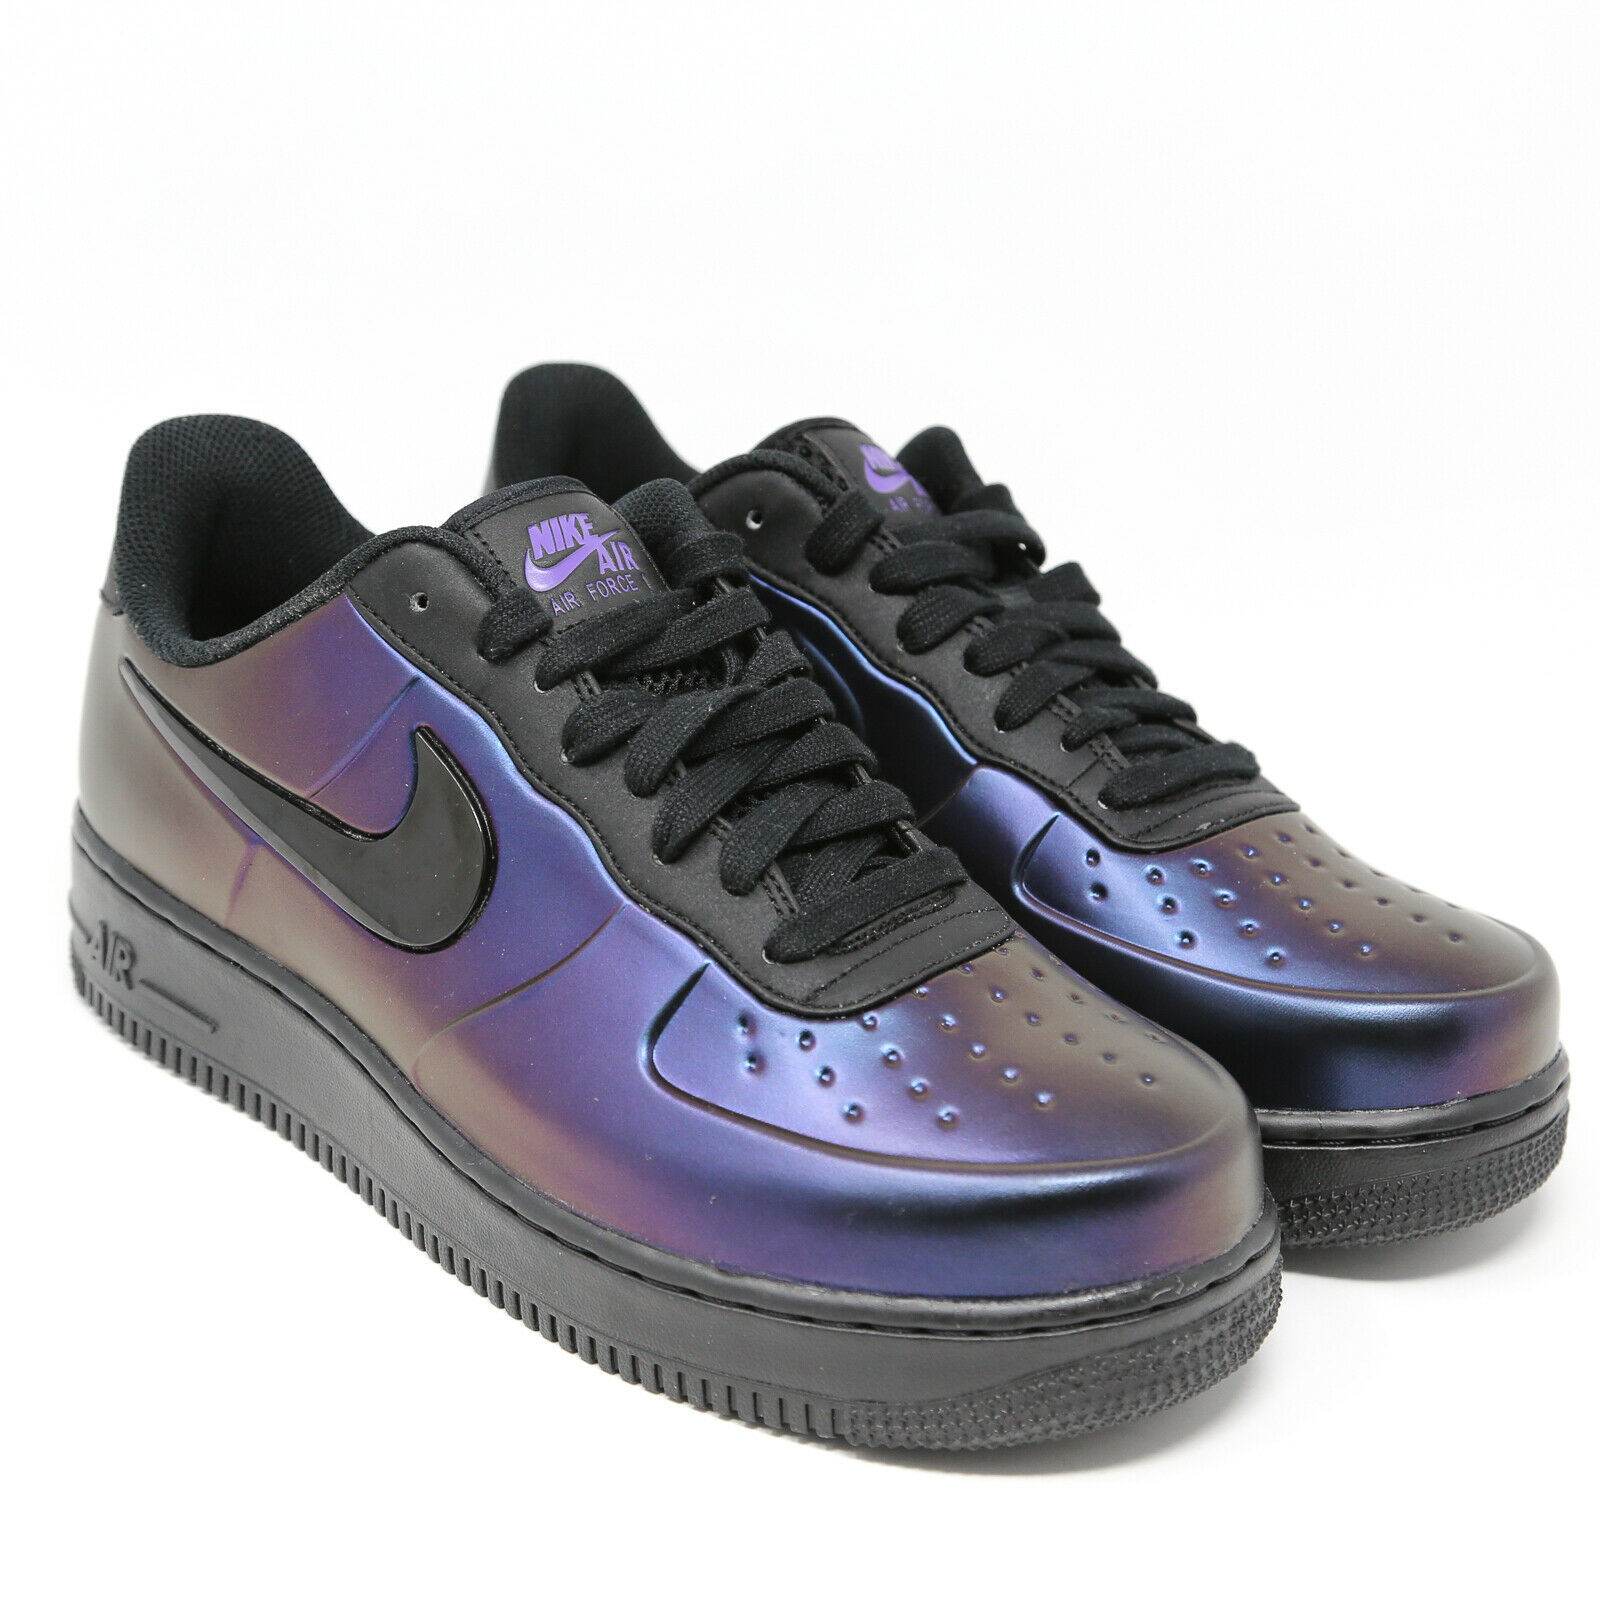 air force 1 pelle marrone